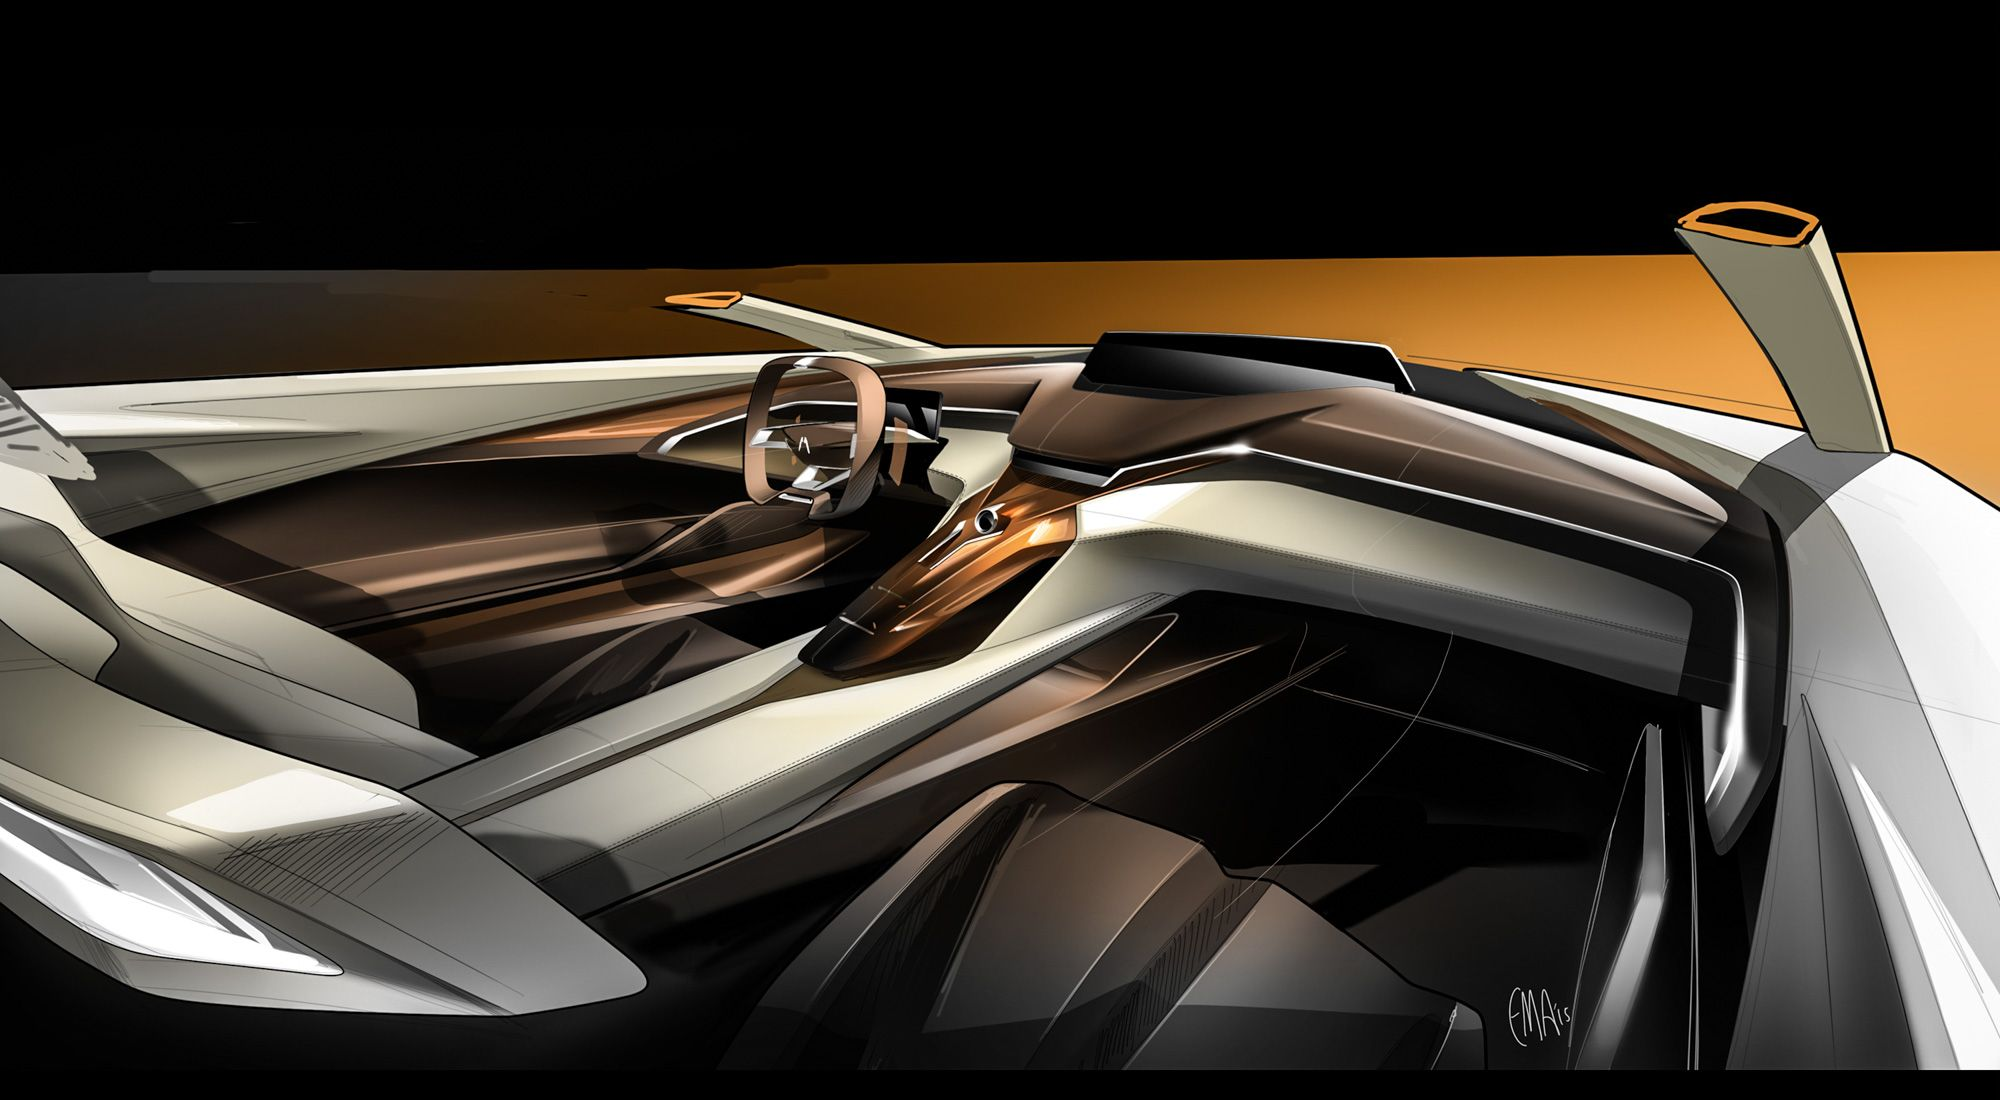 Design Interieur Concept Design Development Acura Precision Concept Car Design